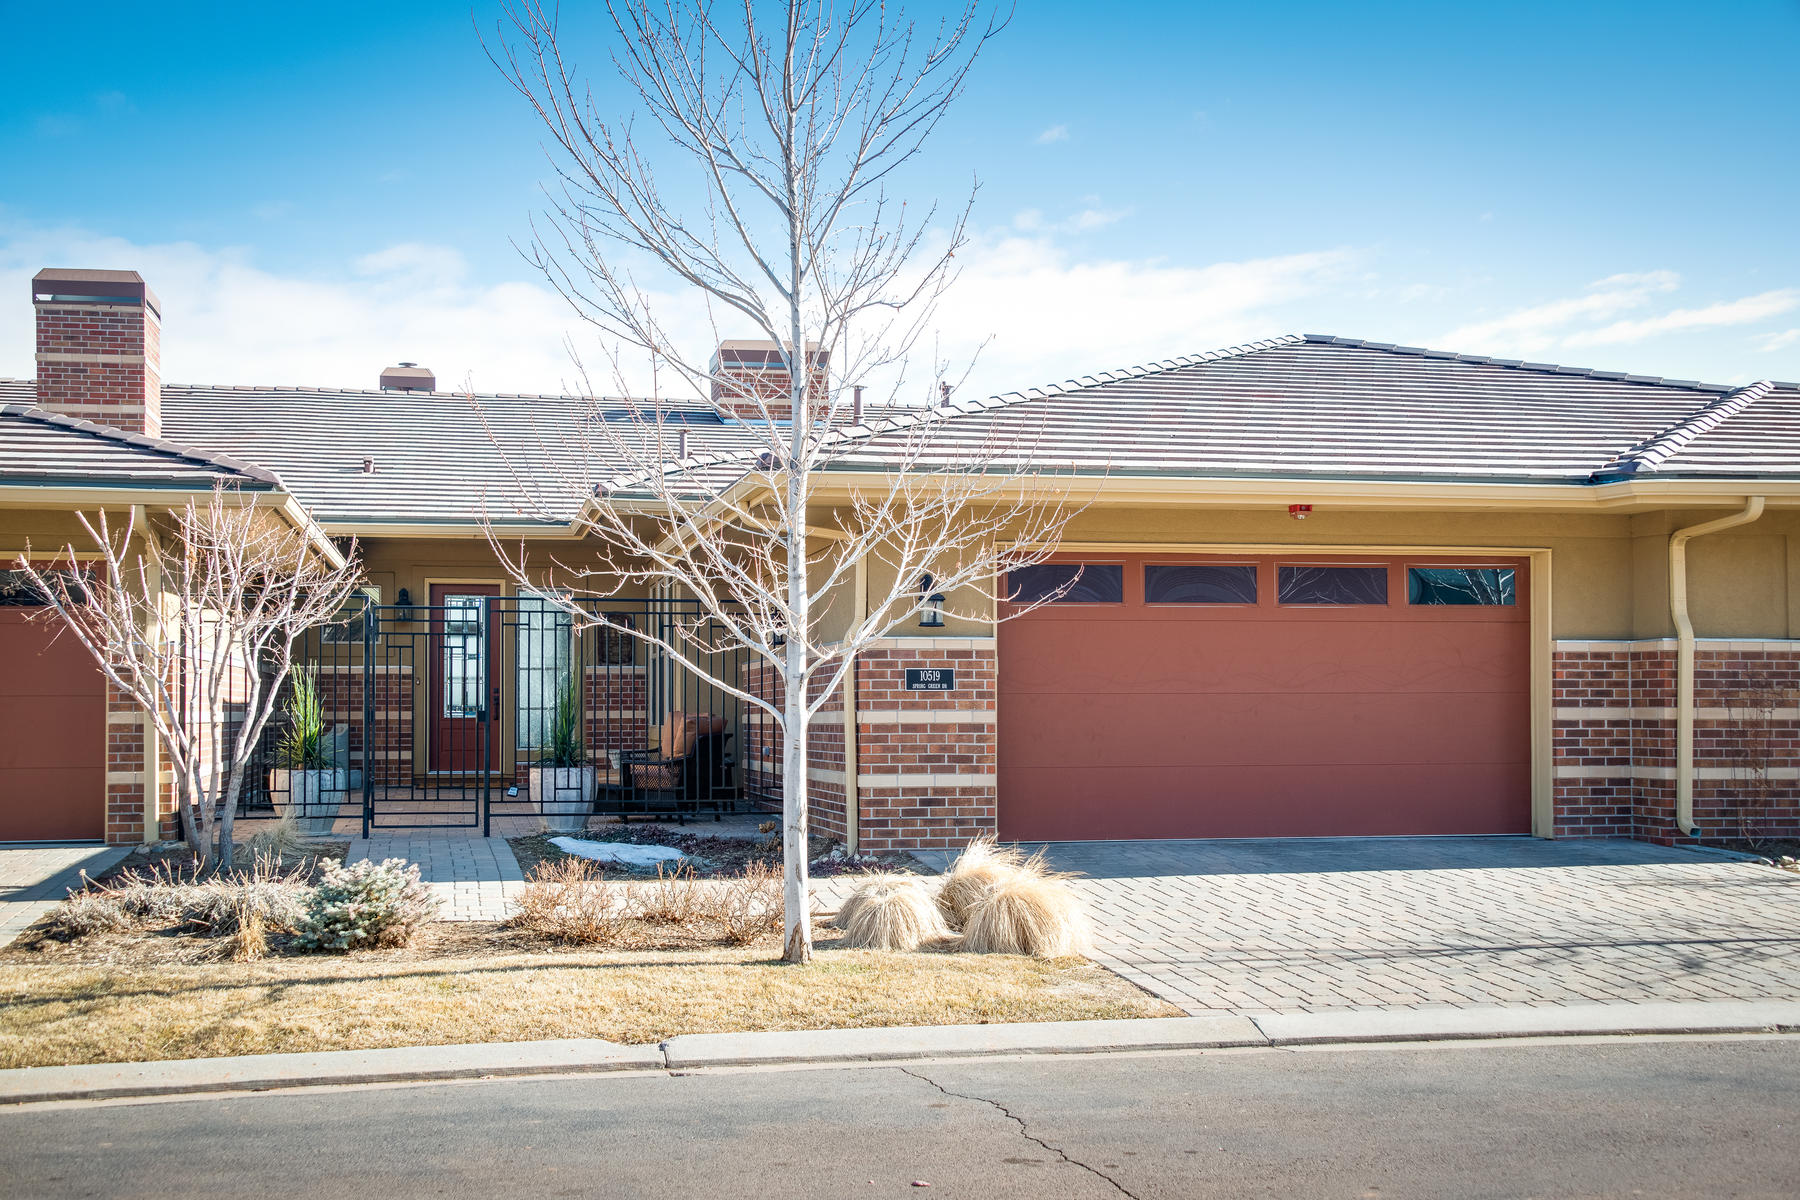 townhouses for Active at Don't miss this rare opportunity to own a ranch-style home with a 3-car garage. 10519 Spring Green Dr Englewood, Colorado 80112 United States